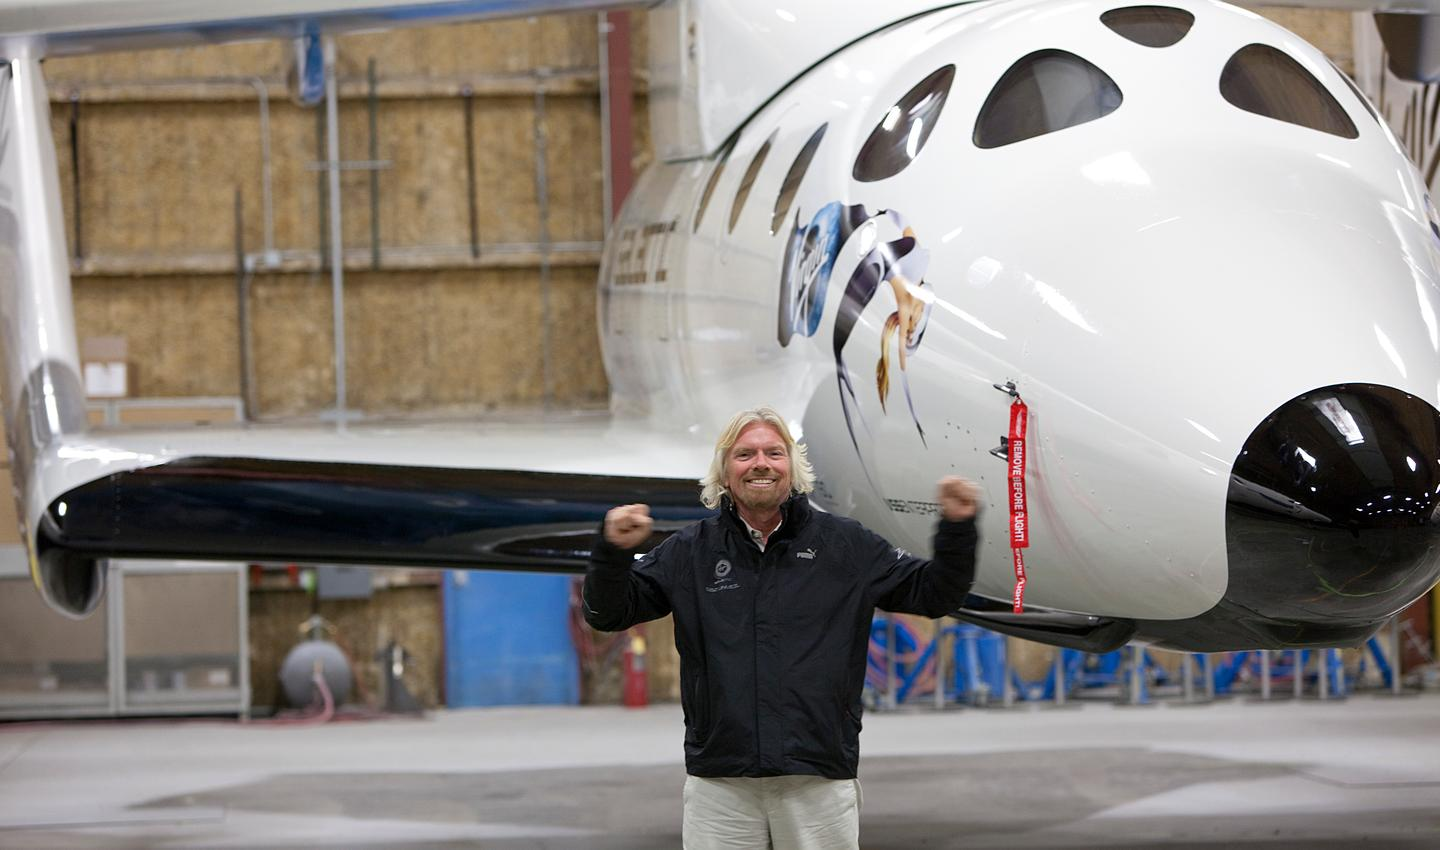 Sir Richard Branson with VSS Enterprise